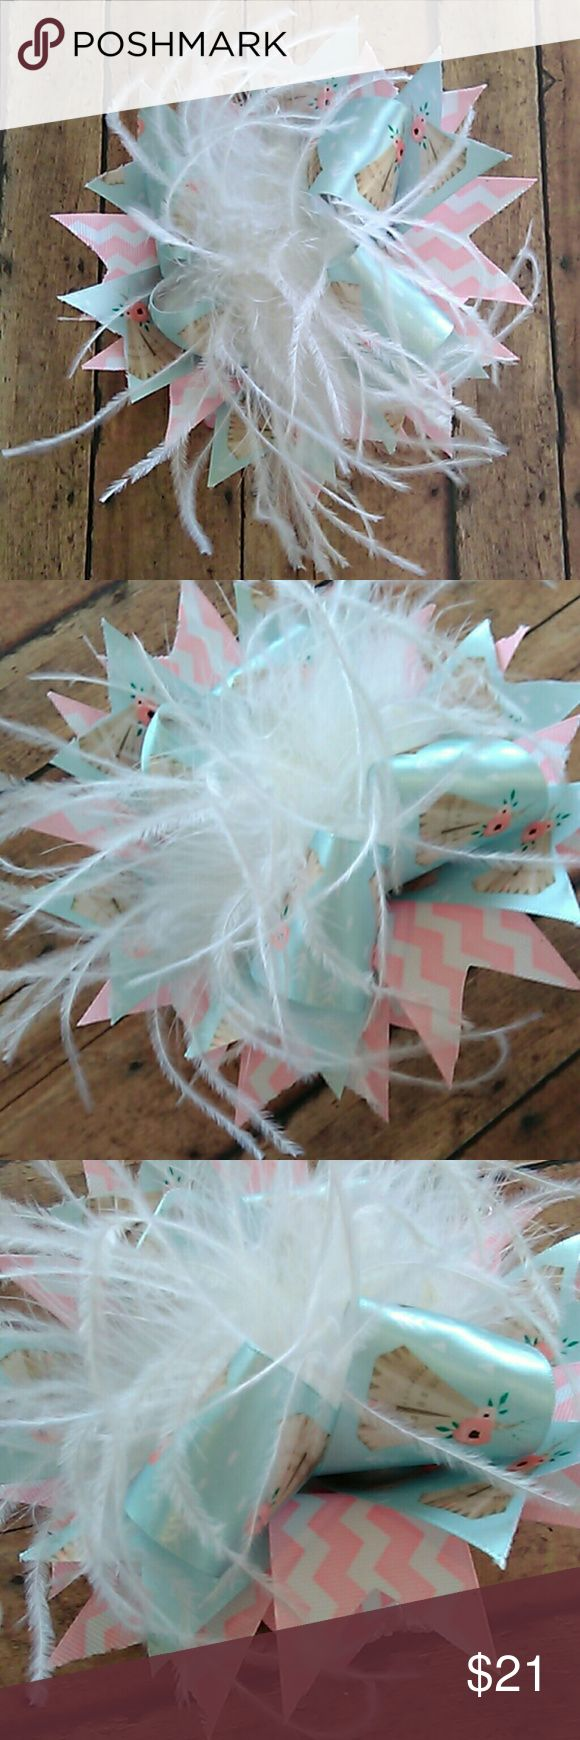 Gorgeous Chevron/TeePee Headband Brand new, hand made, white elastic headband with pink/white chevron ribbon, sky blue ribbon with tan, floral teepees and white plumage, has alligator clip on elastic headband. Accessories Hair Accessories